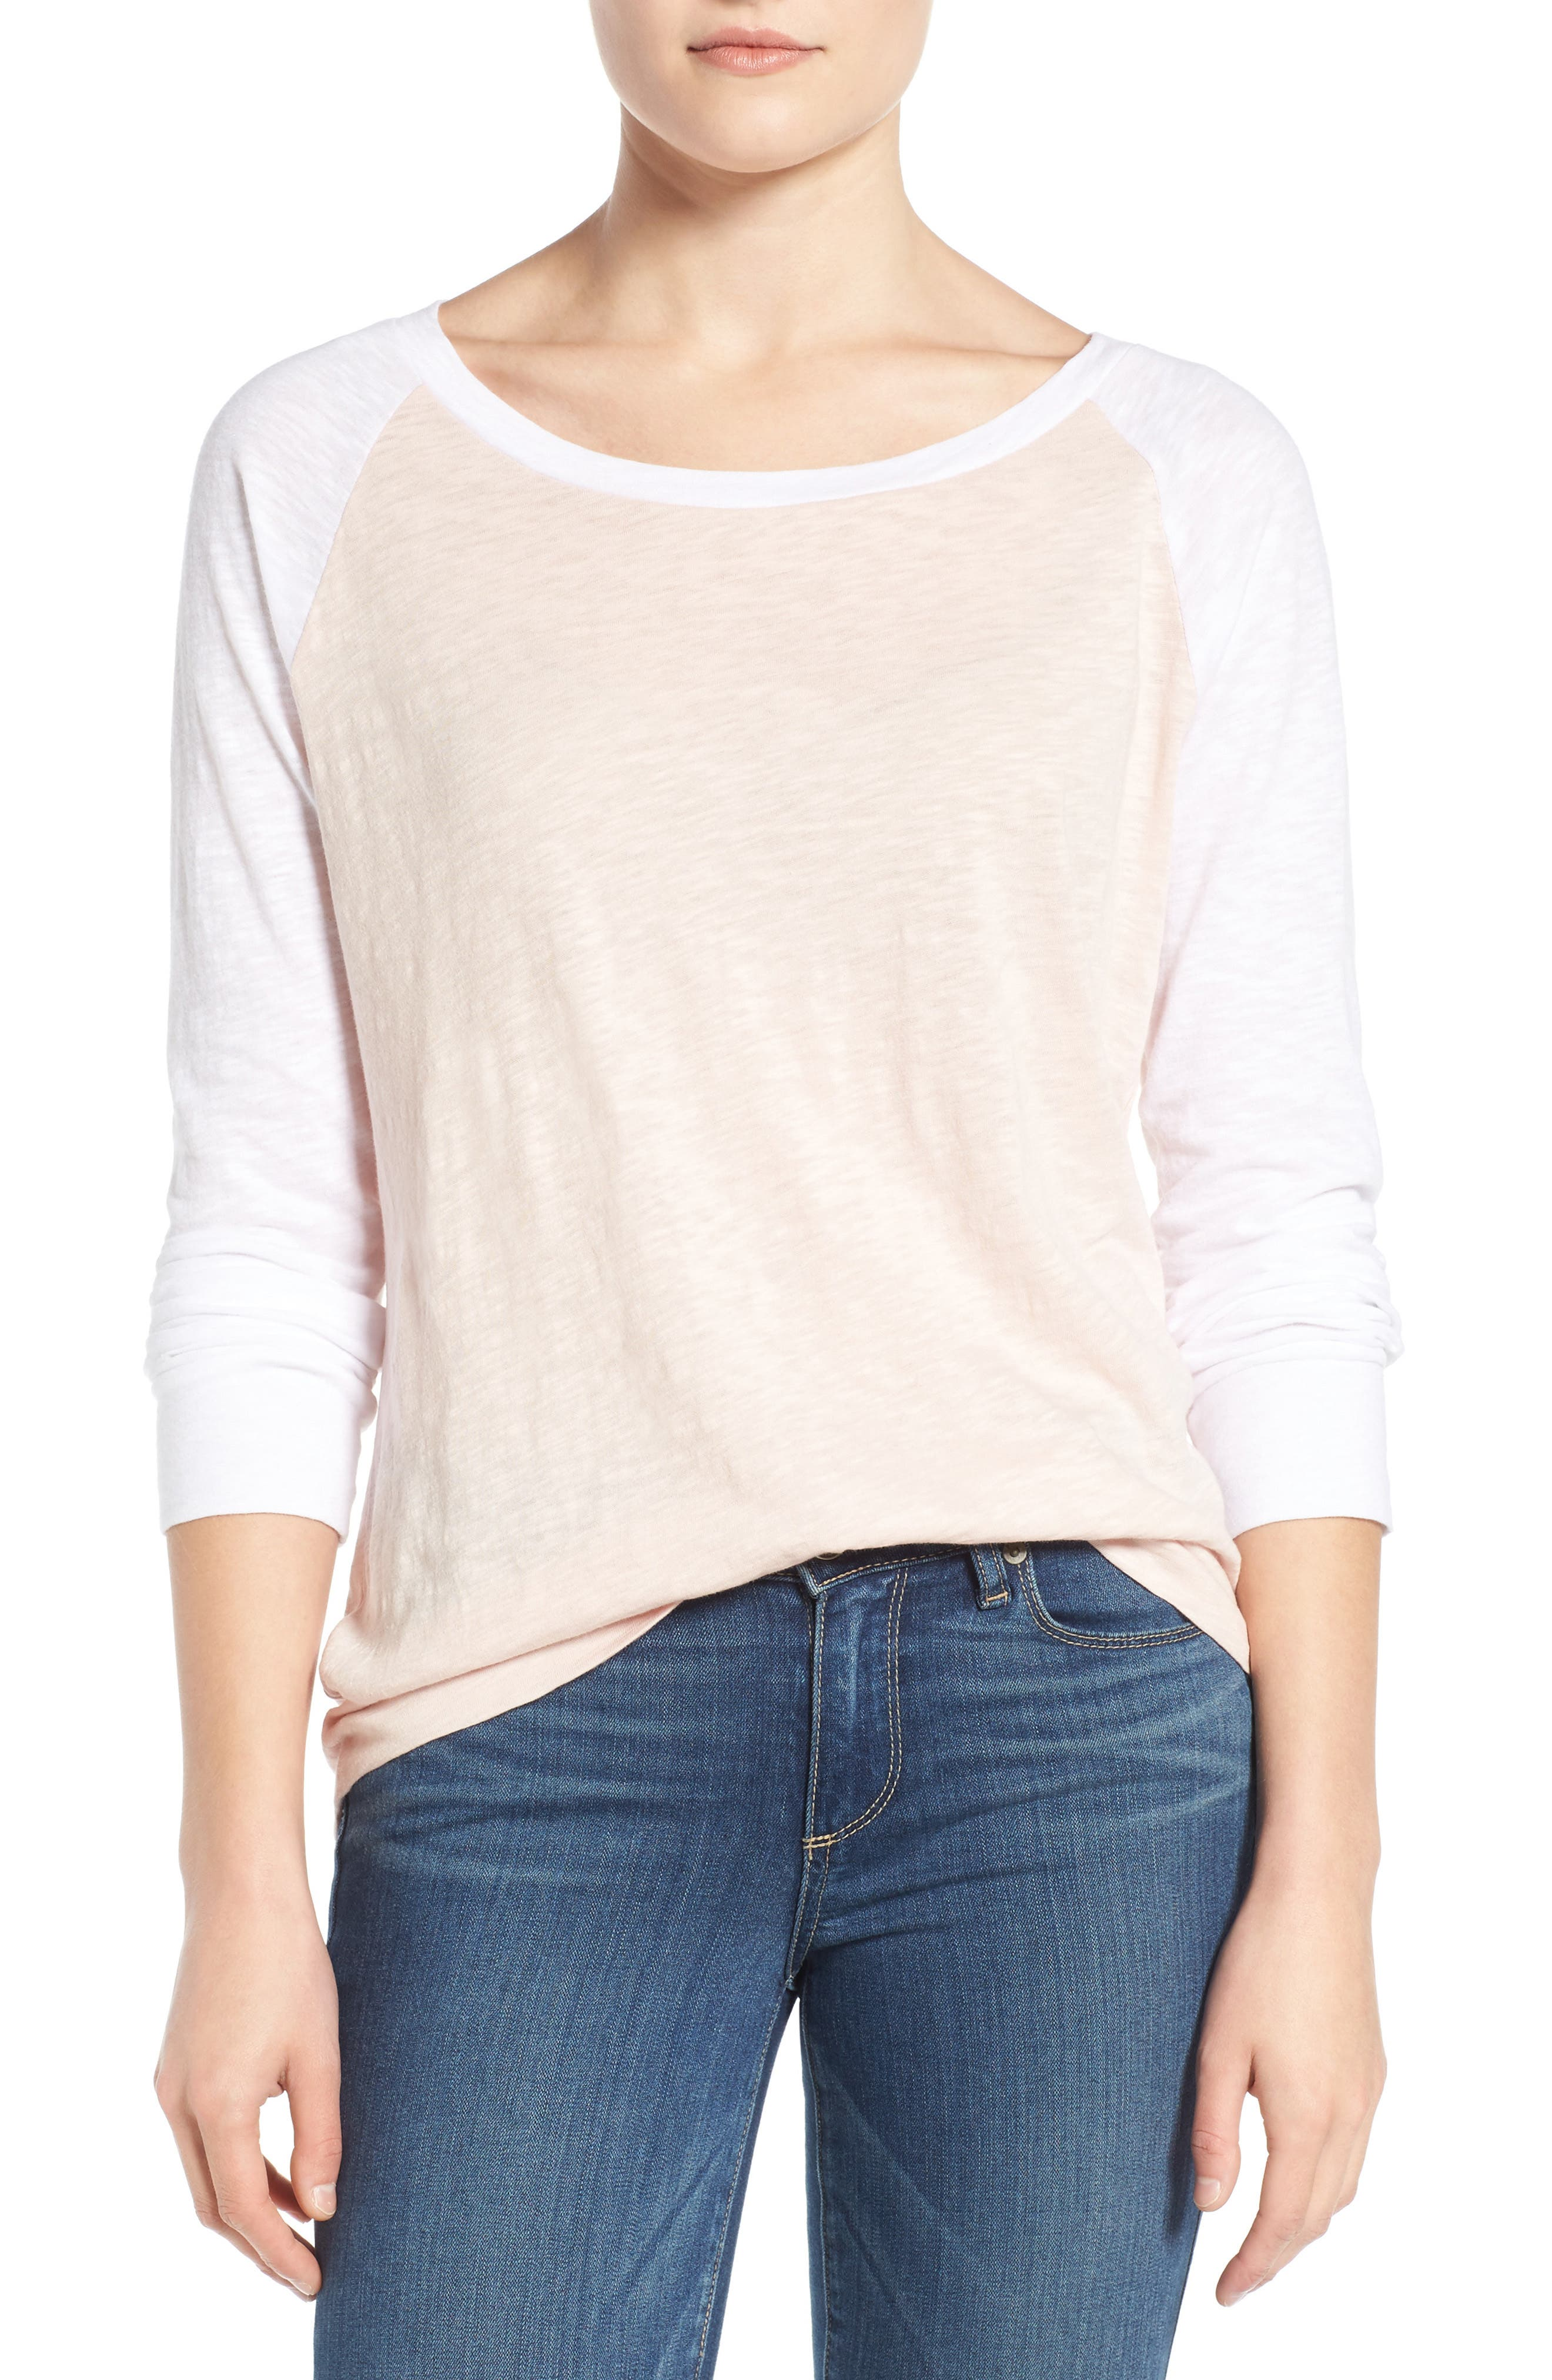 Lightweight Colorblock Cotton Tee,                             Main thumbnail 1, color,                             Pink Peach- White Colorblock